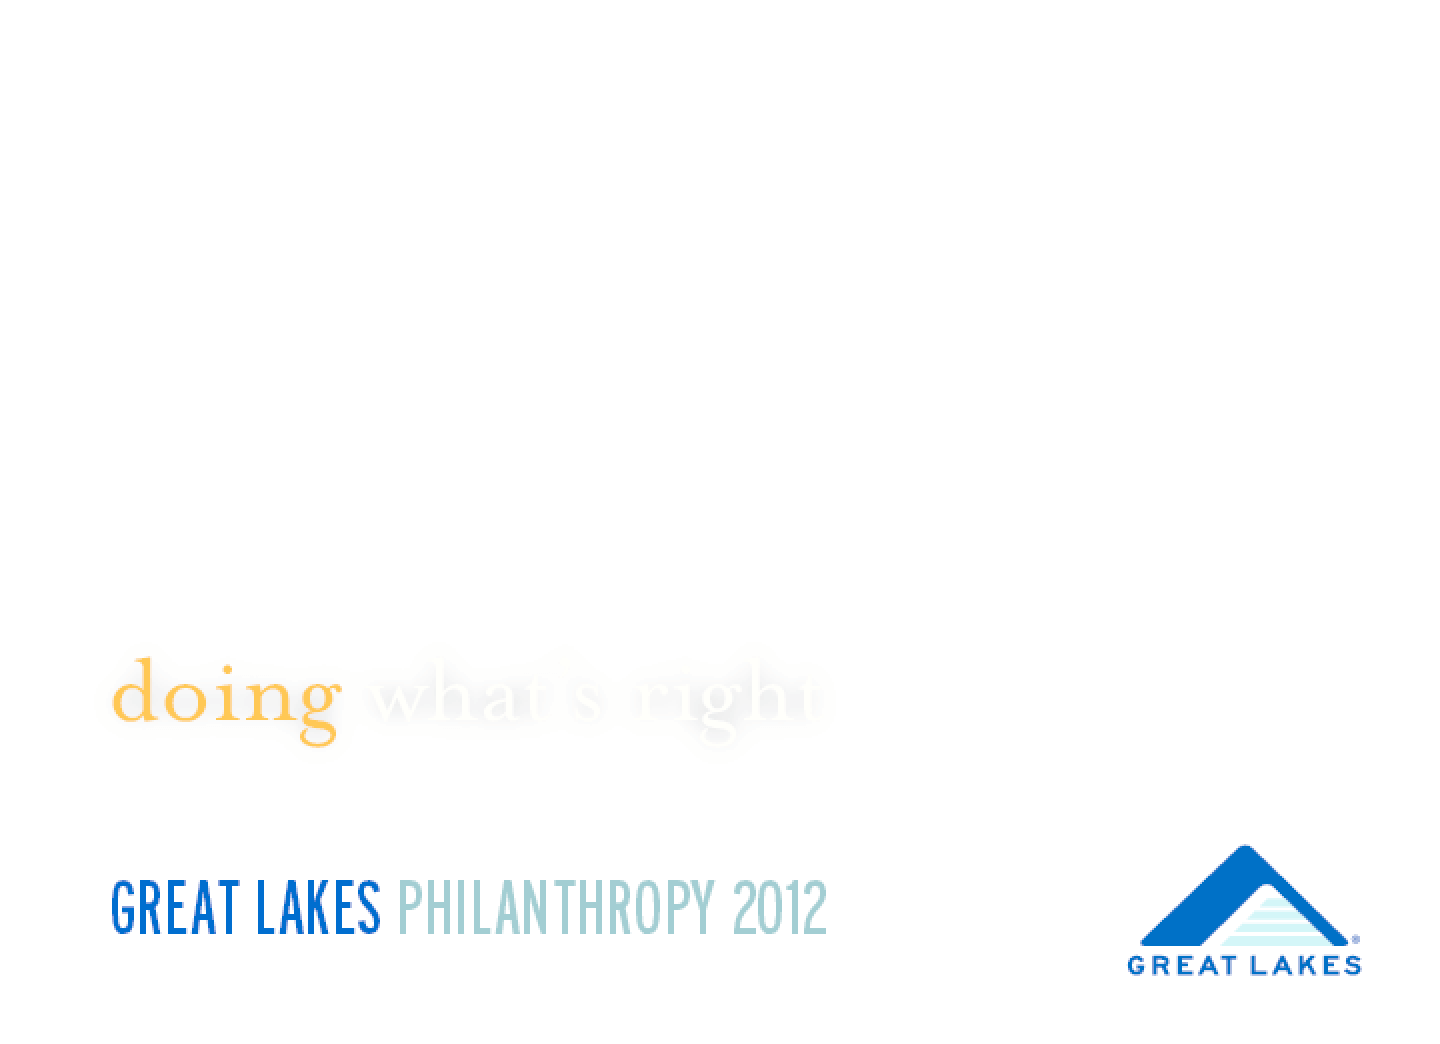 Great Lakes Philanthropy 2012 / Annual Report